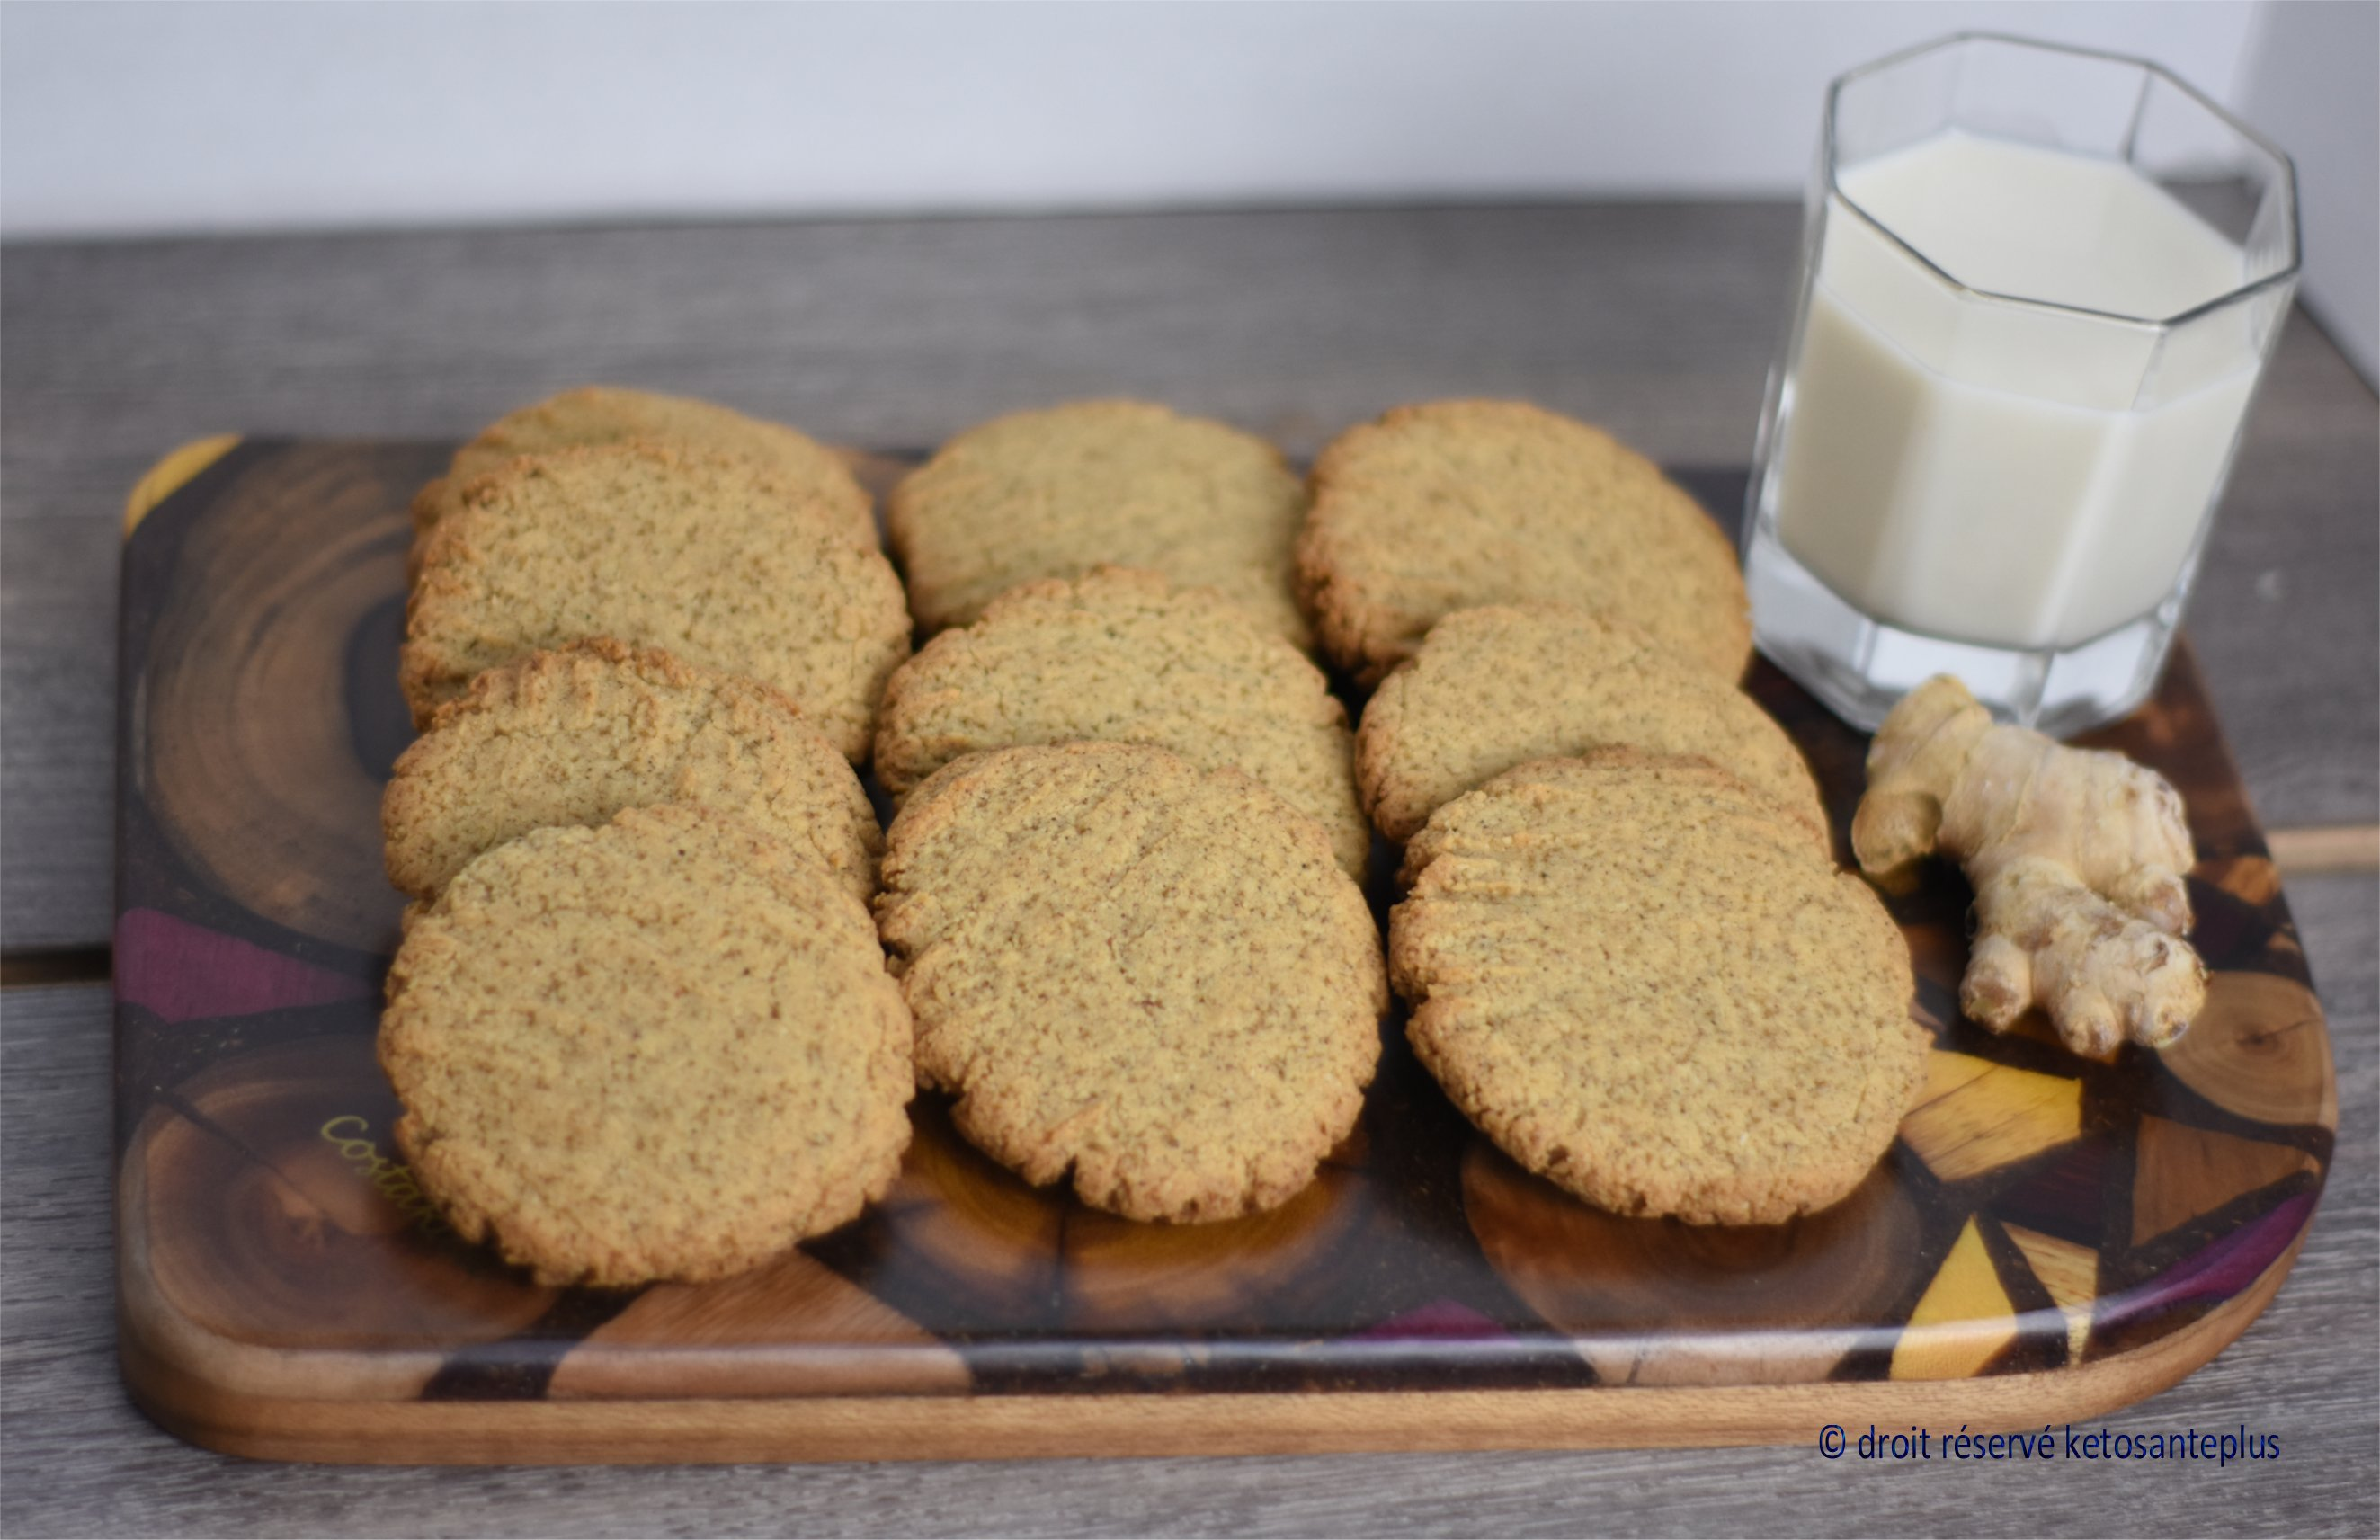 Biscuits au gingembre keto